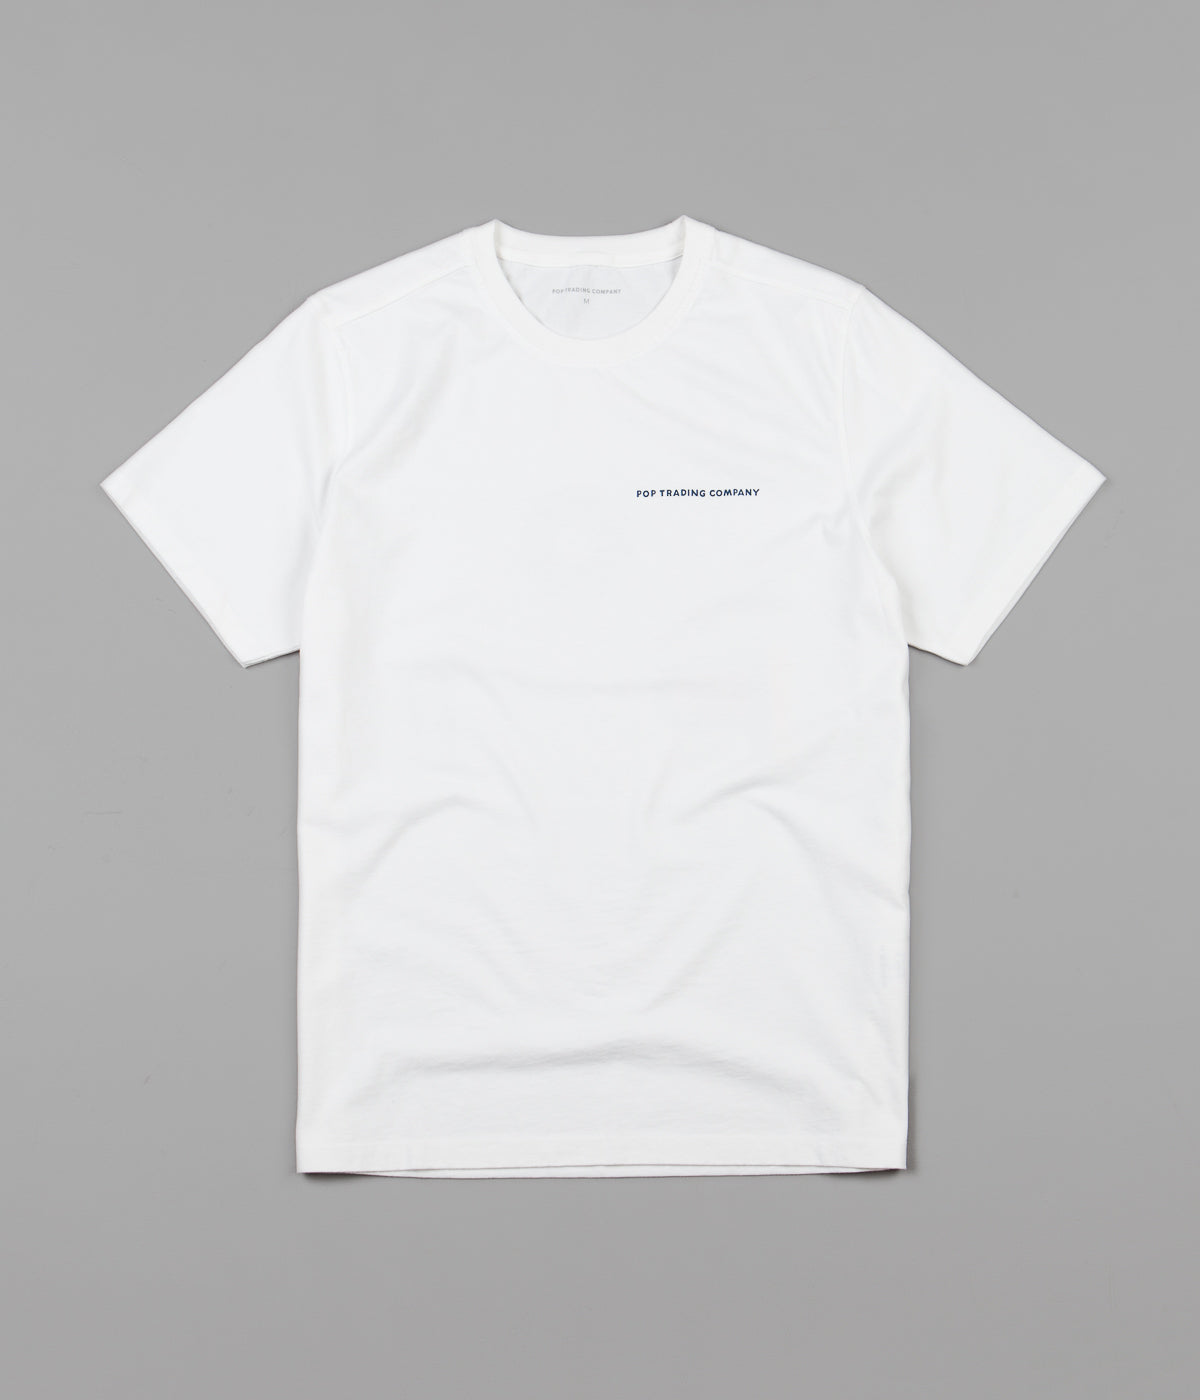 Pop Trading Company x Parra T-Shirt - White